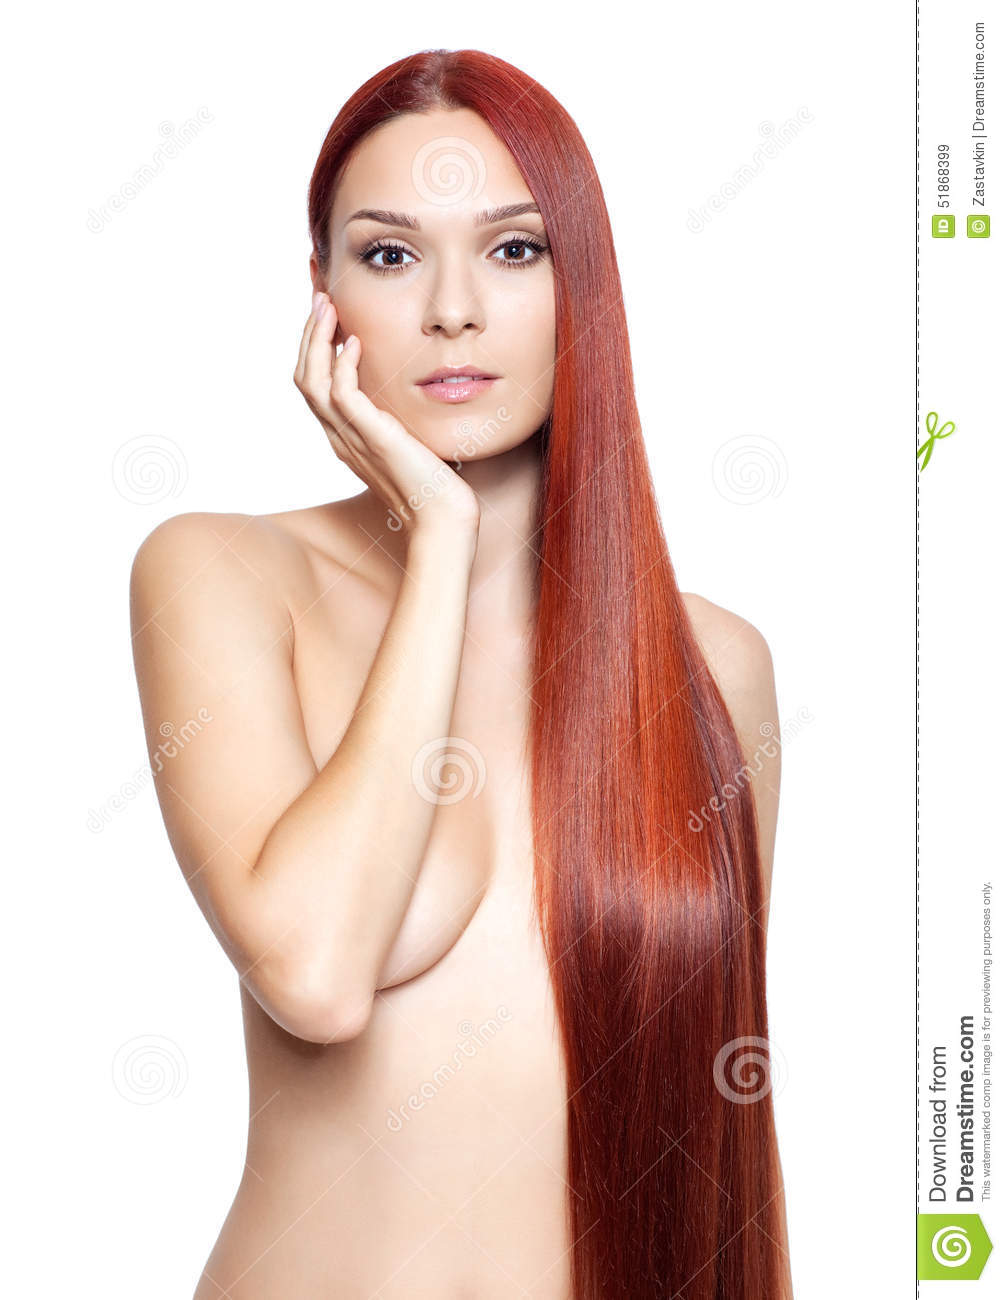 nude woman with pink hair